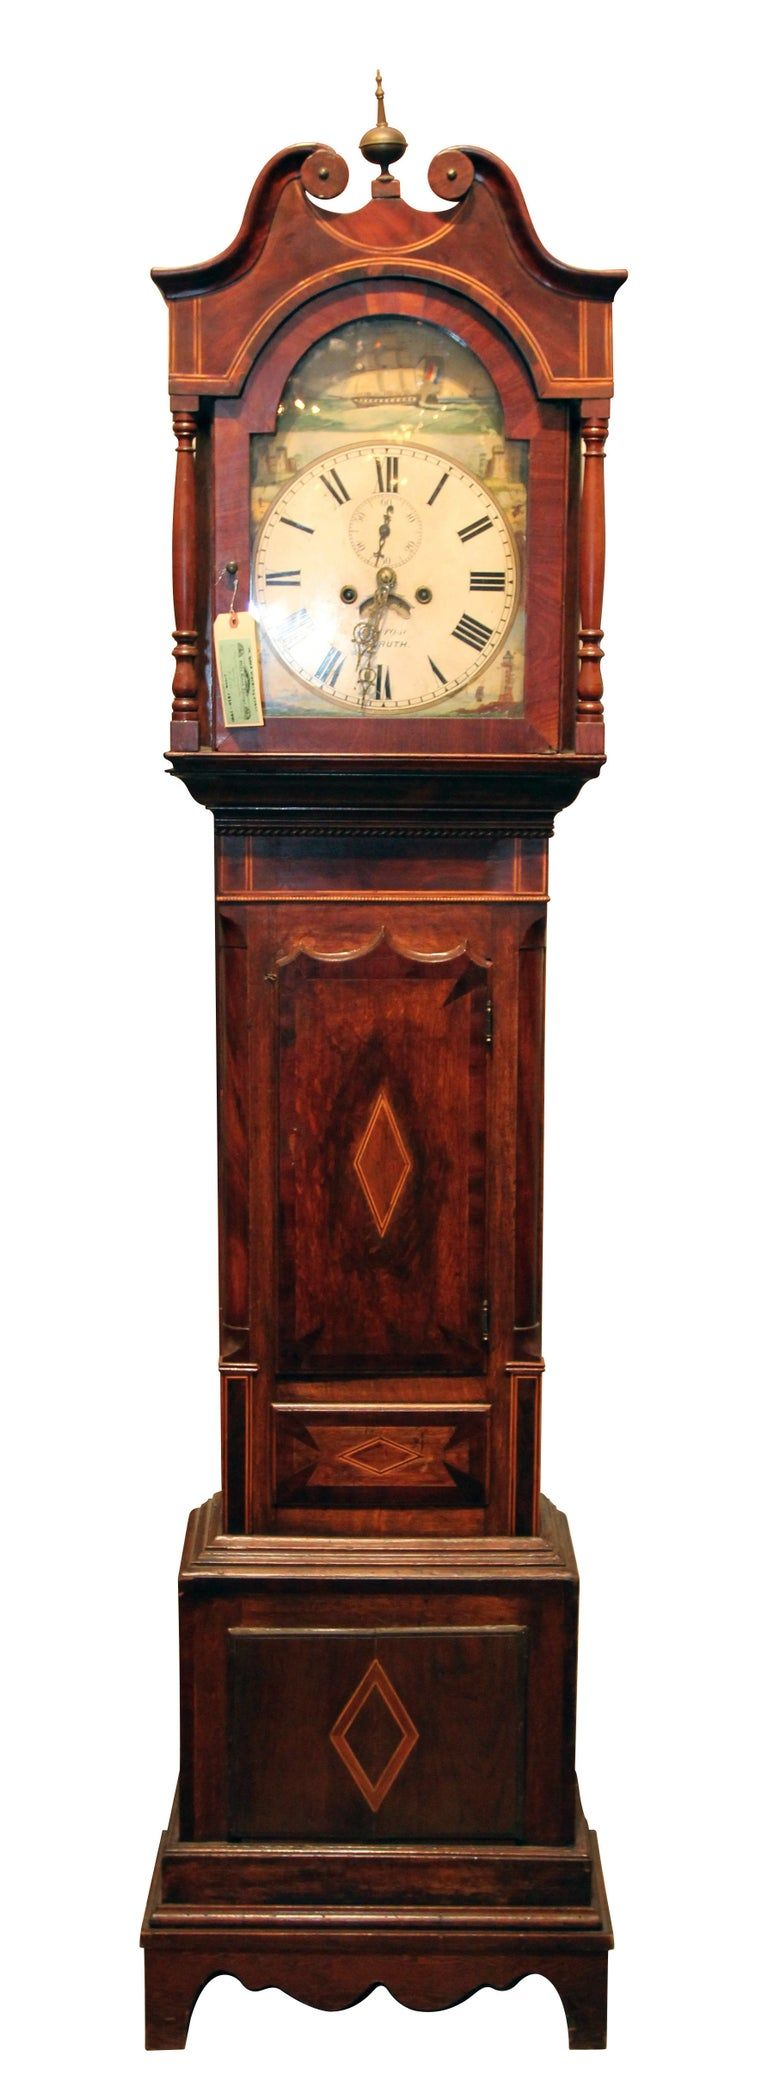 Early 1800s Grandfather Tall Case Clock by Pembroke Renroth